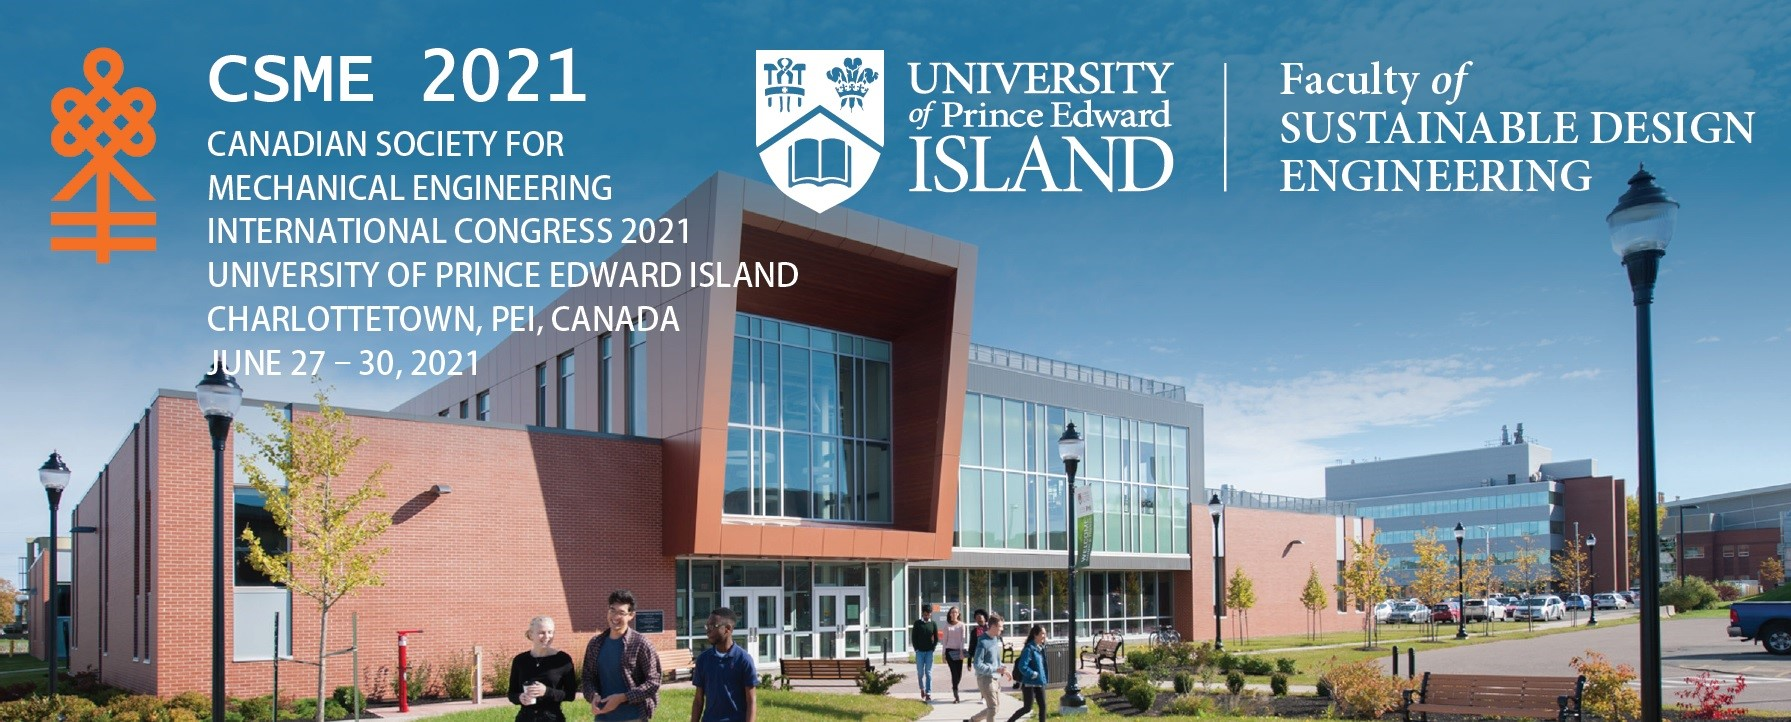 CSME2021 Congress at UPEI